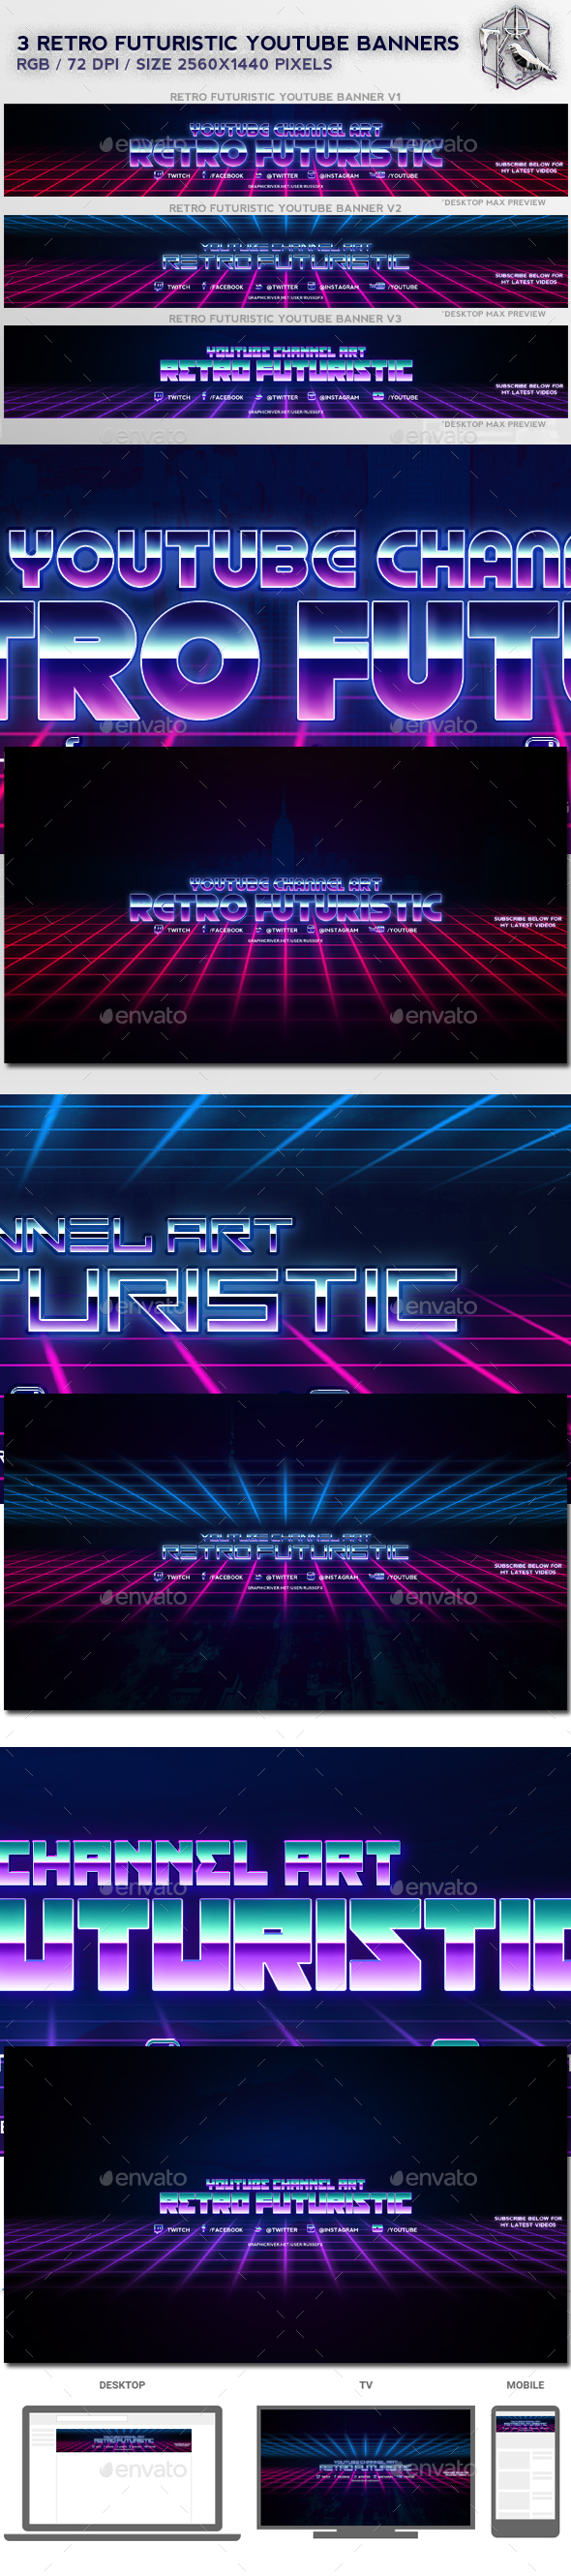 GraphicRiver 3 Retro Futuristic Youtube Banners 20986135